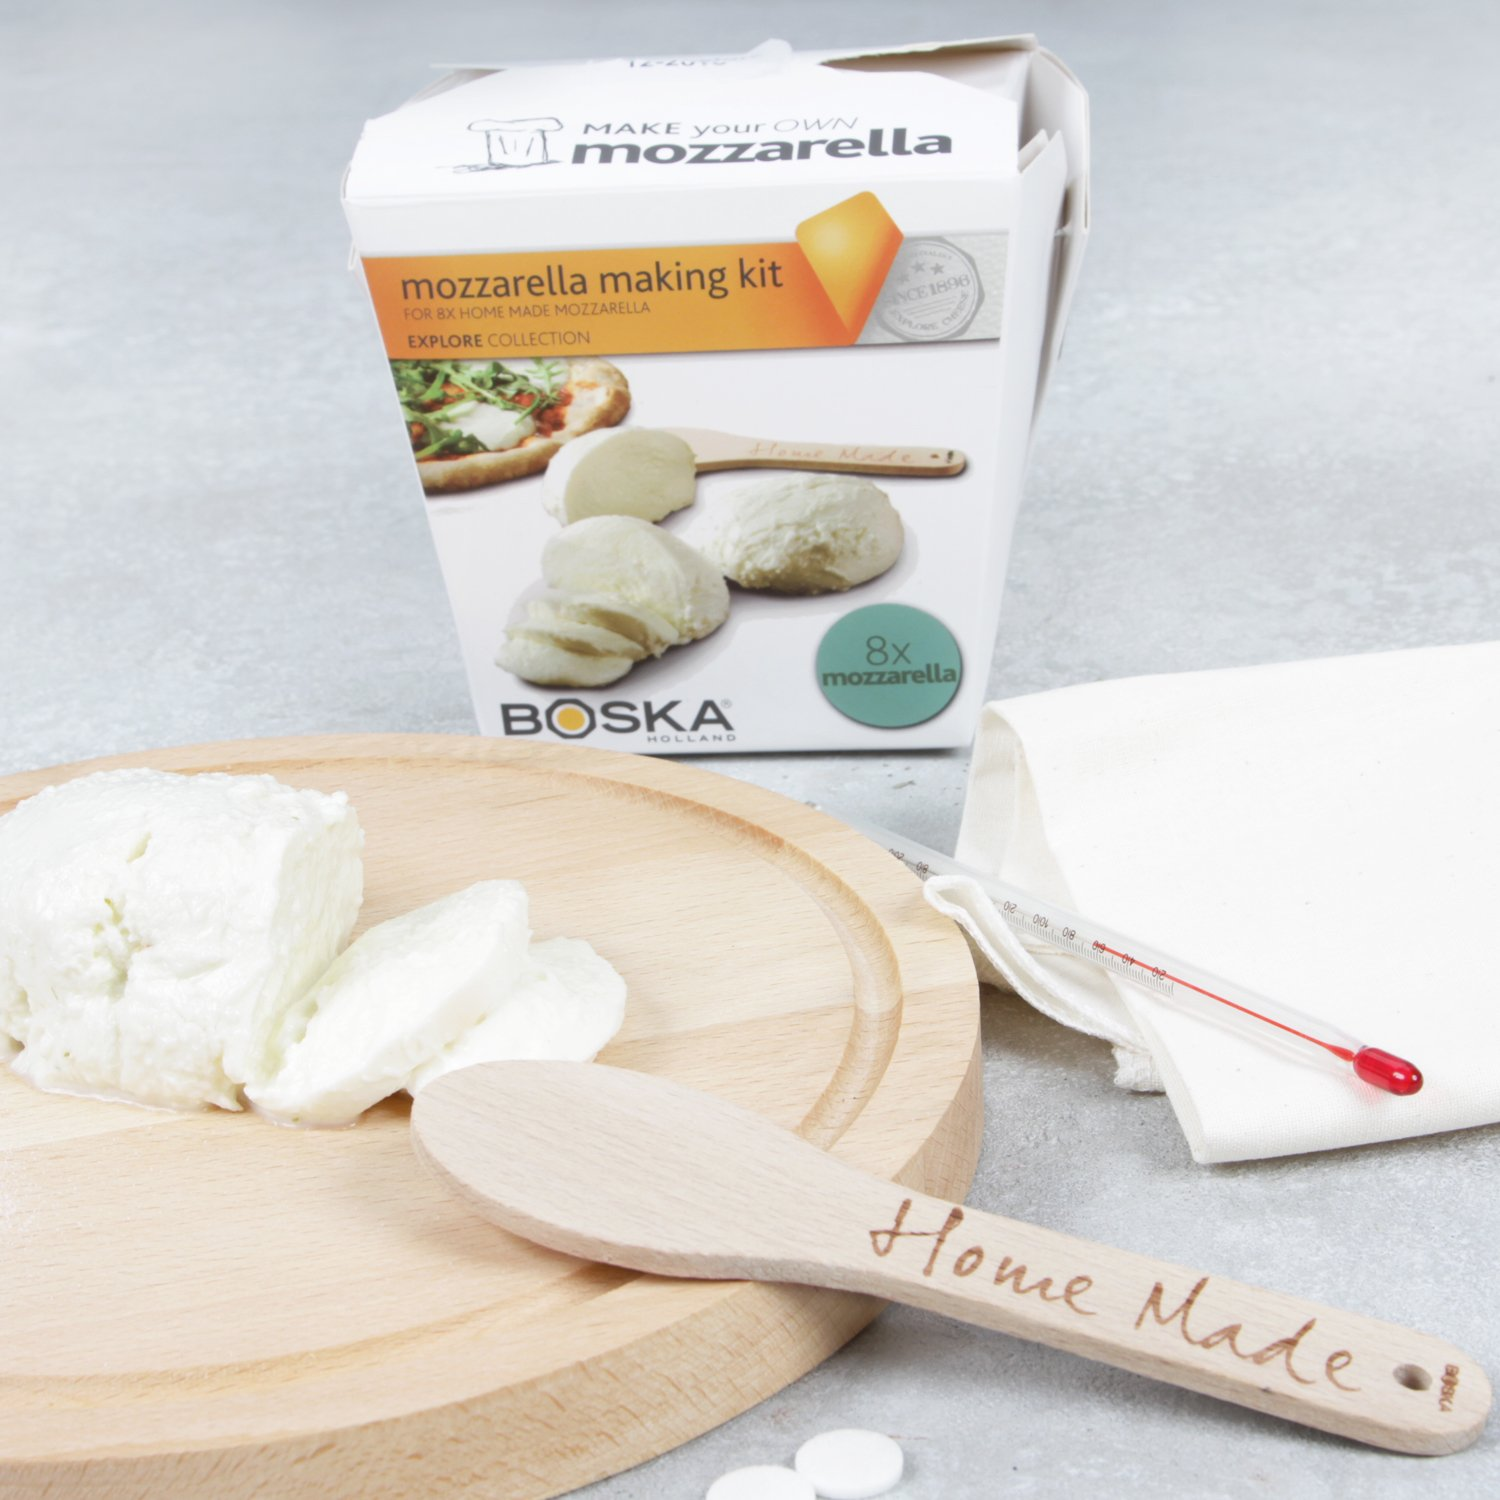 Boska Holland Mozzarella Cheese Making Kit, Homemade Set, Makes up to 8 Batches, Explore Collection by Boska Holland (Image #4)